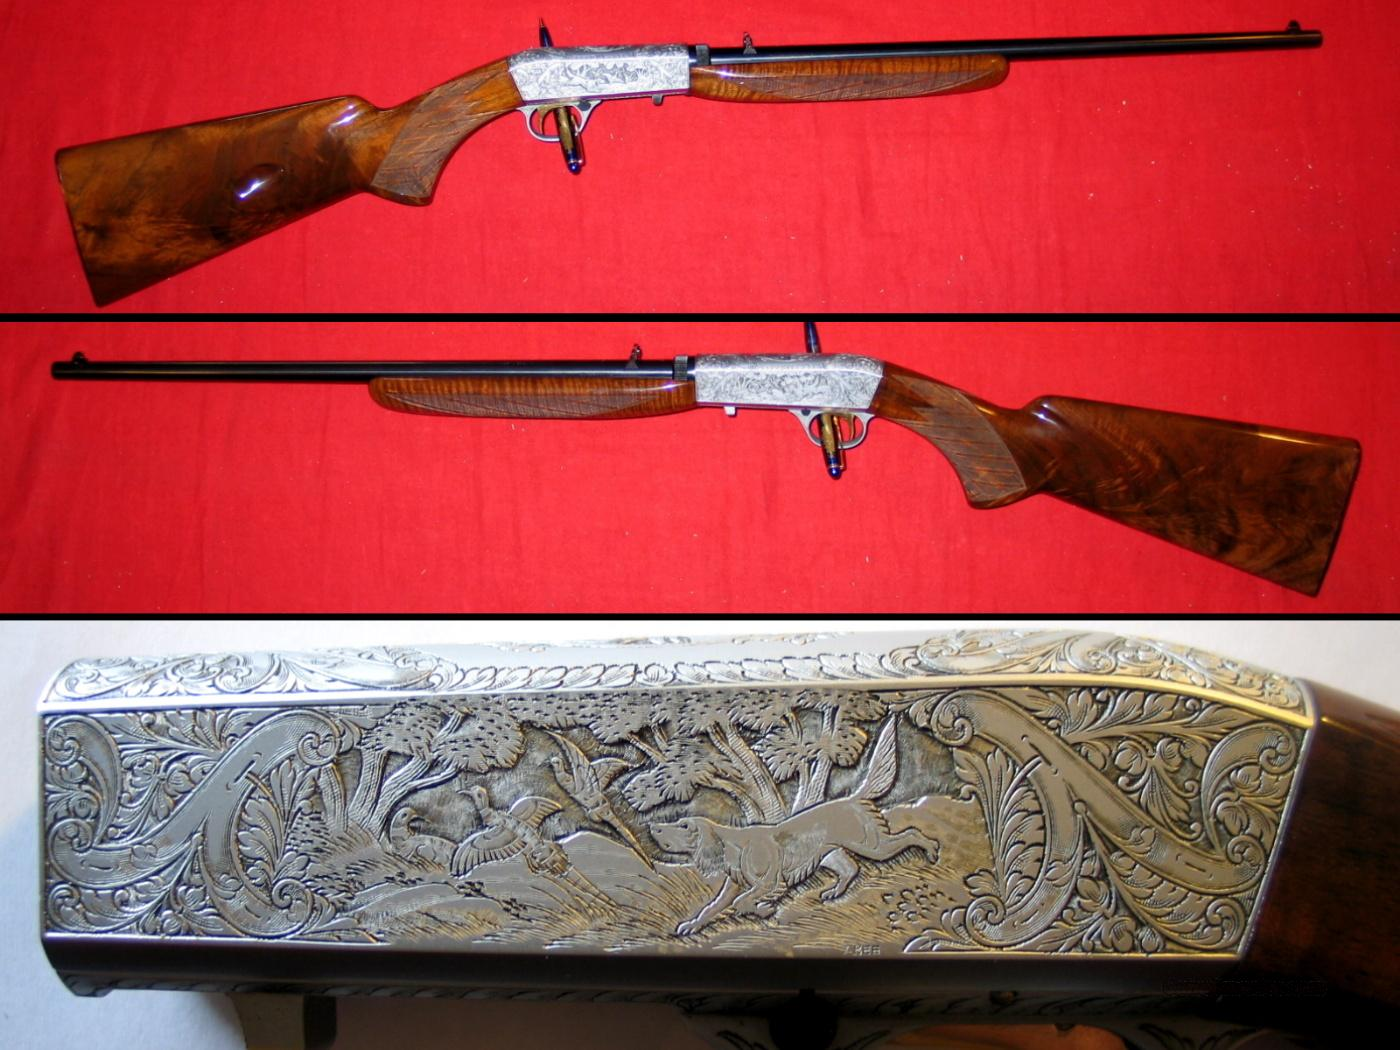 Auto-22 Belgium Gr. III - .22lr, By A. Bee  Guns > Rifles > Browning Rifles > Semi Auto > Hunting